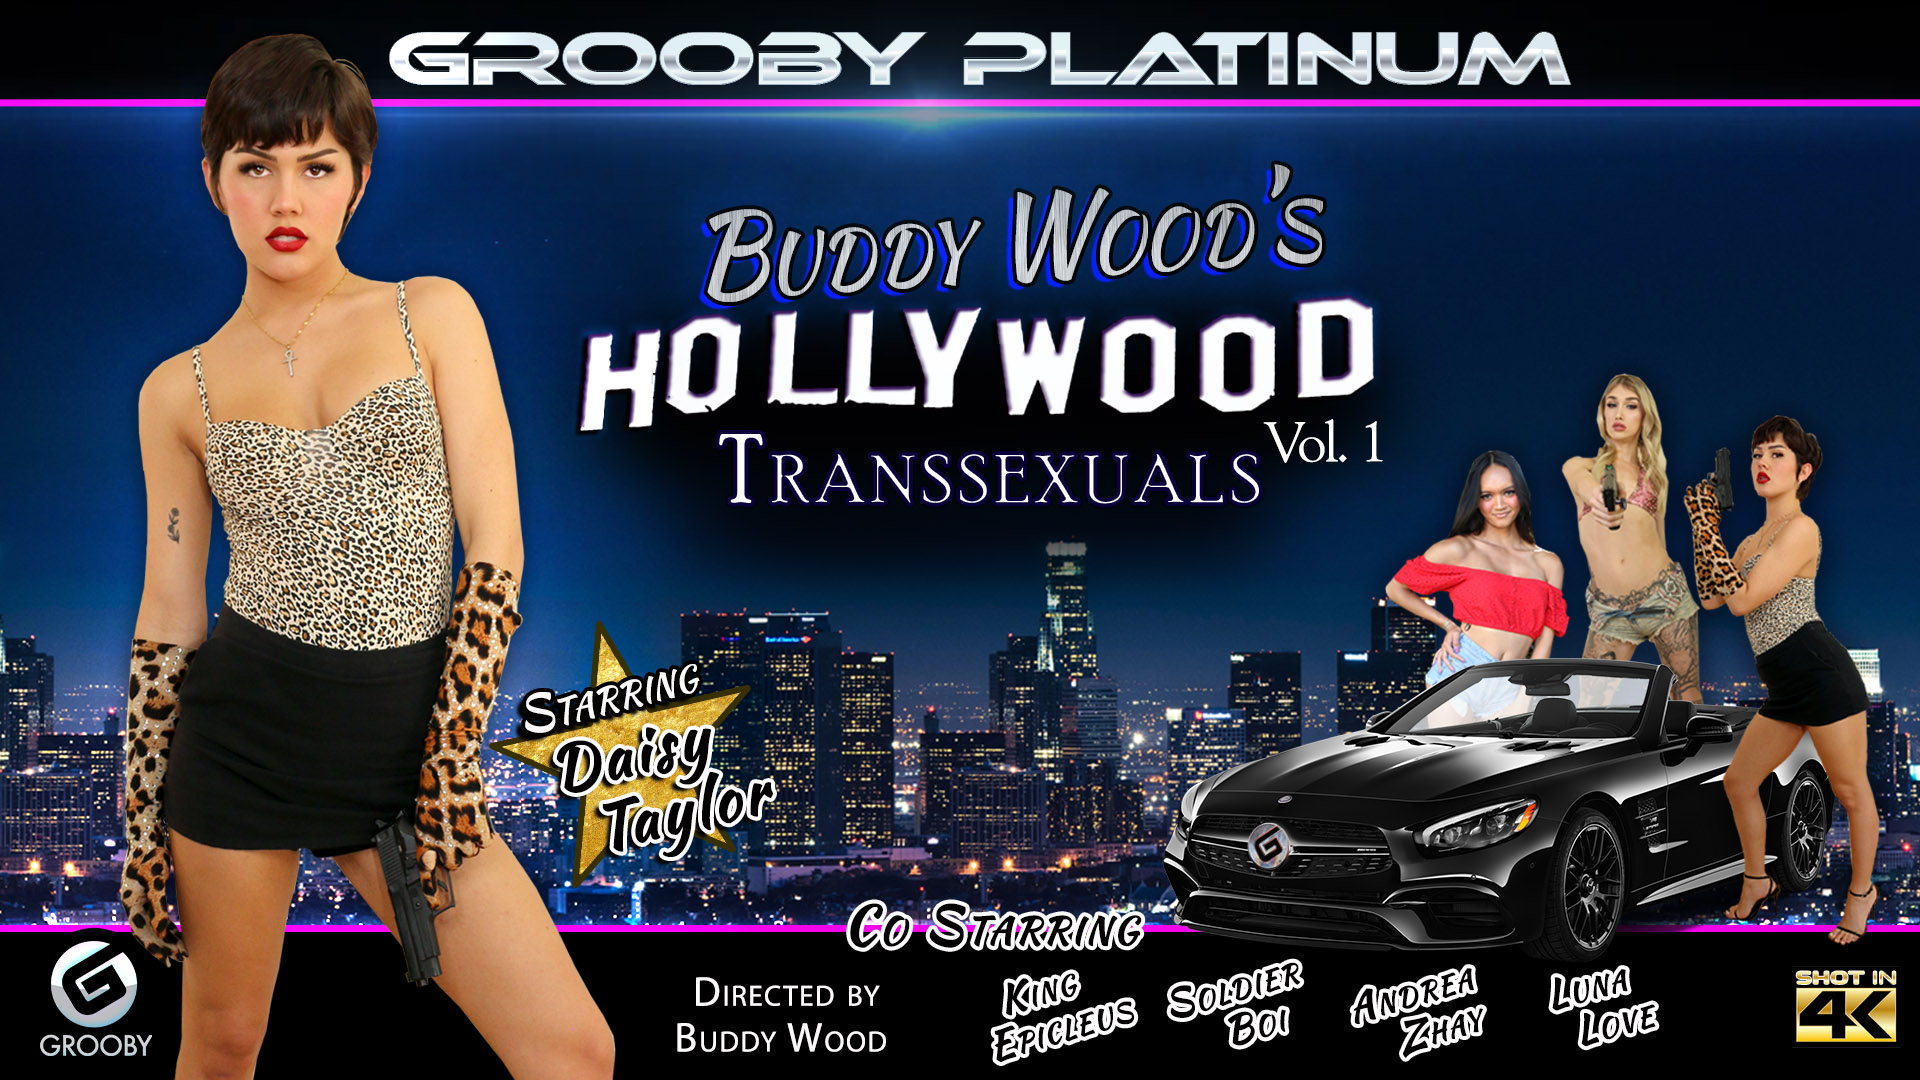 Buddy Woods Hollywood Transsexuals Vol 1 DVD Trailer